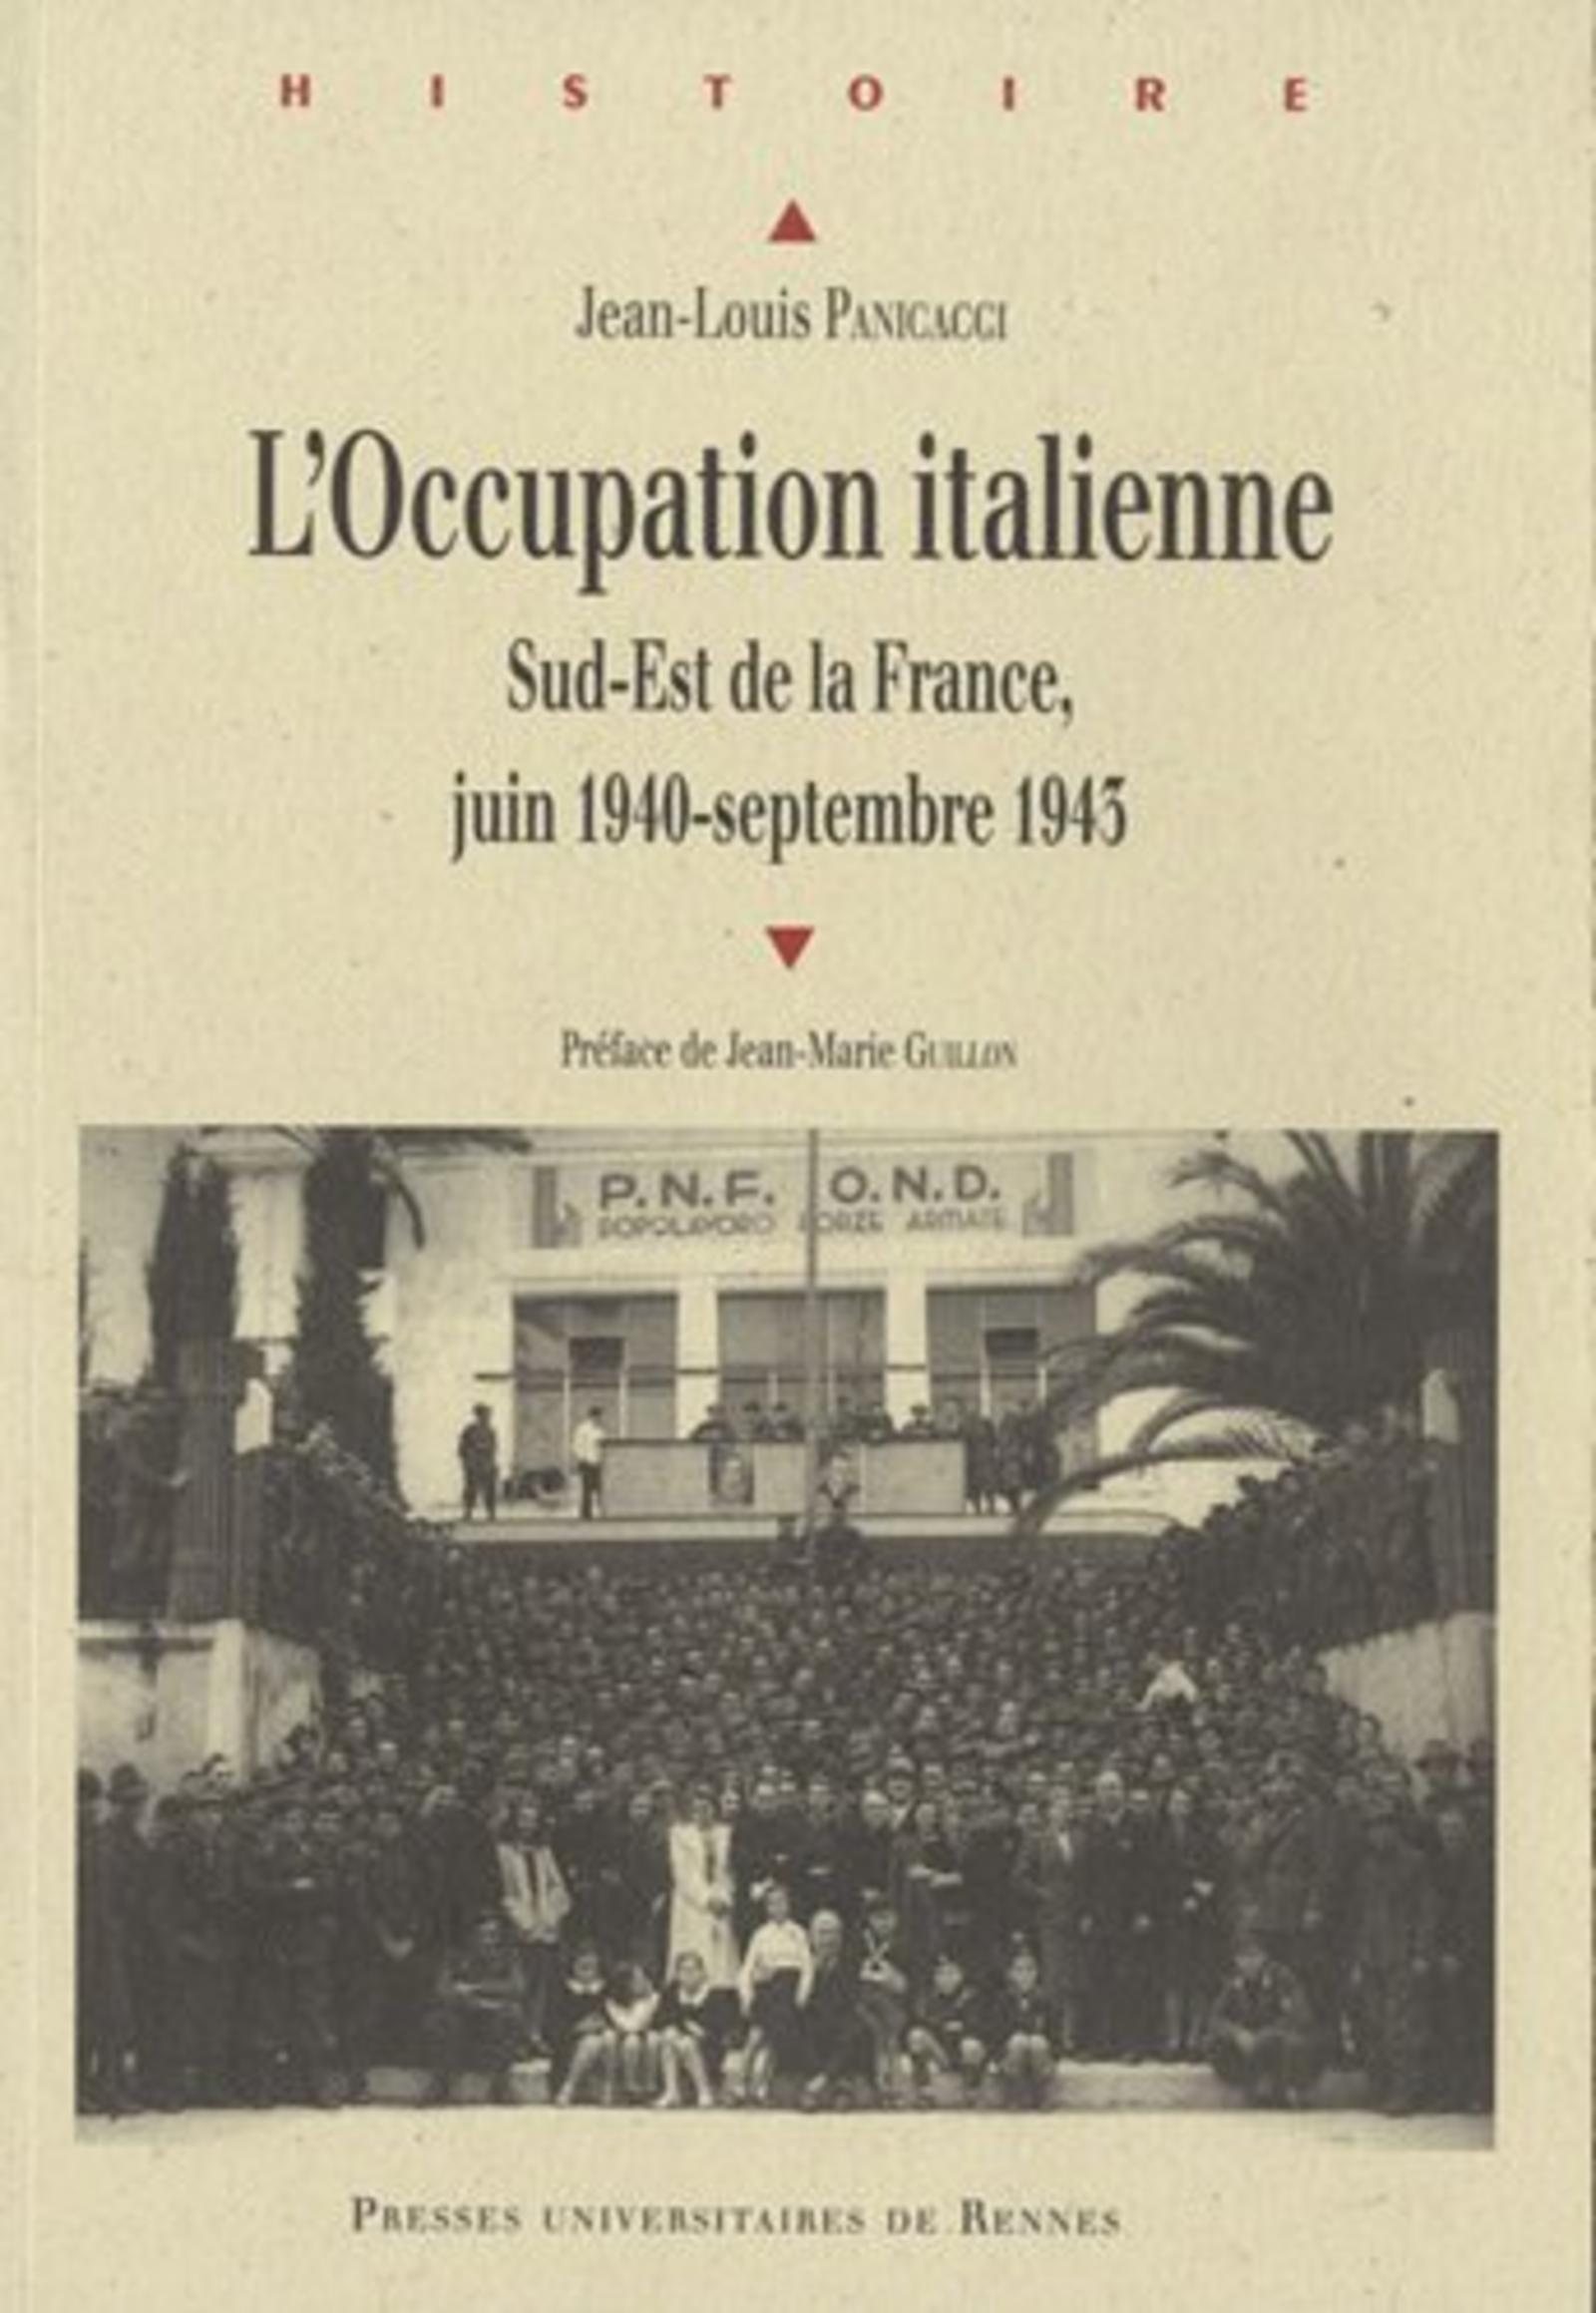 OCCUPATION ITALIENNE